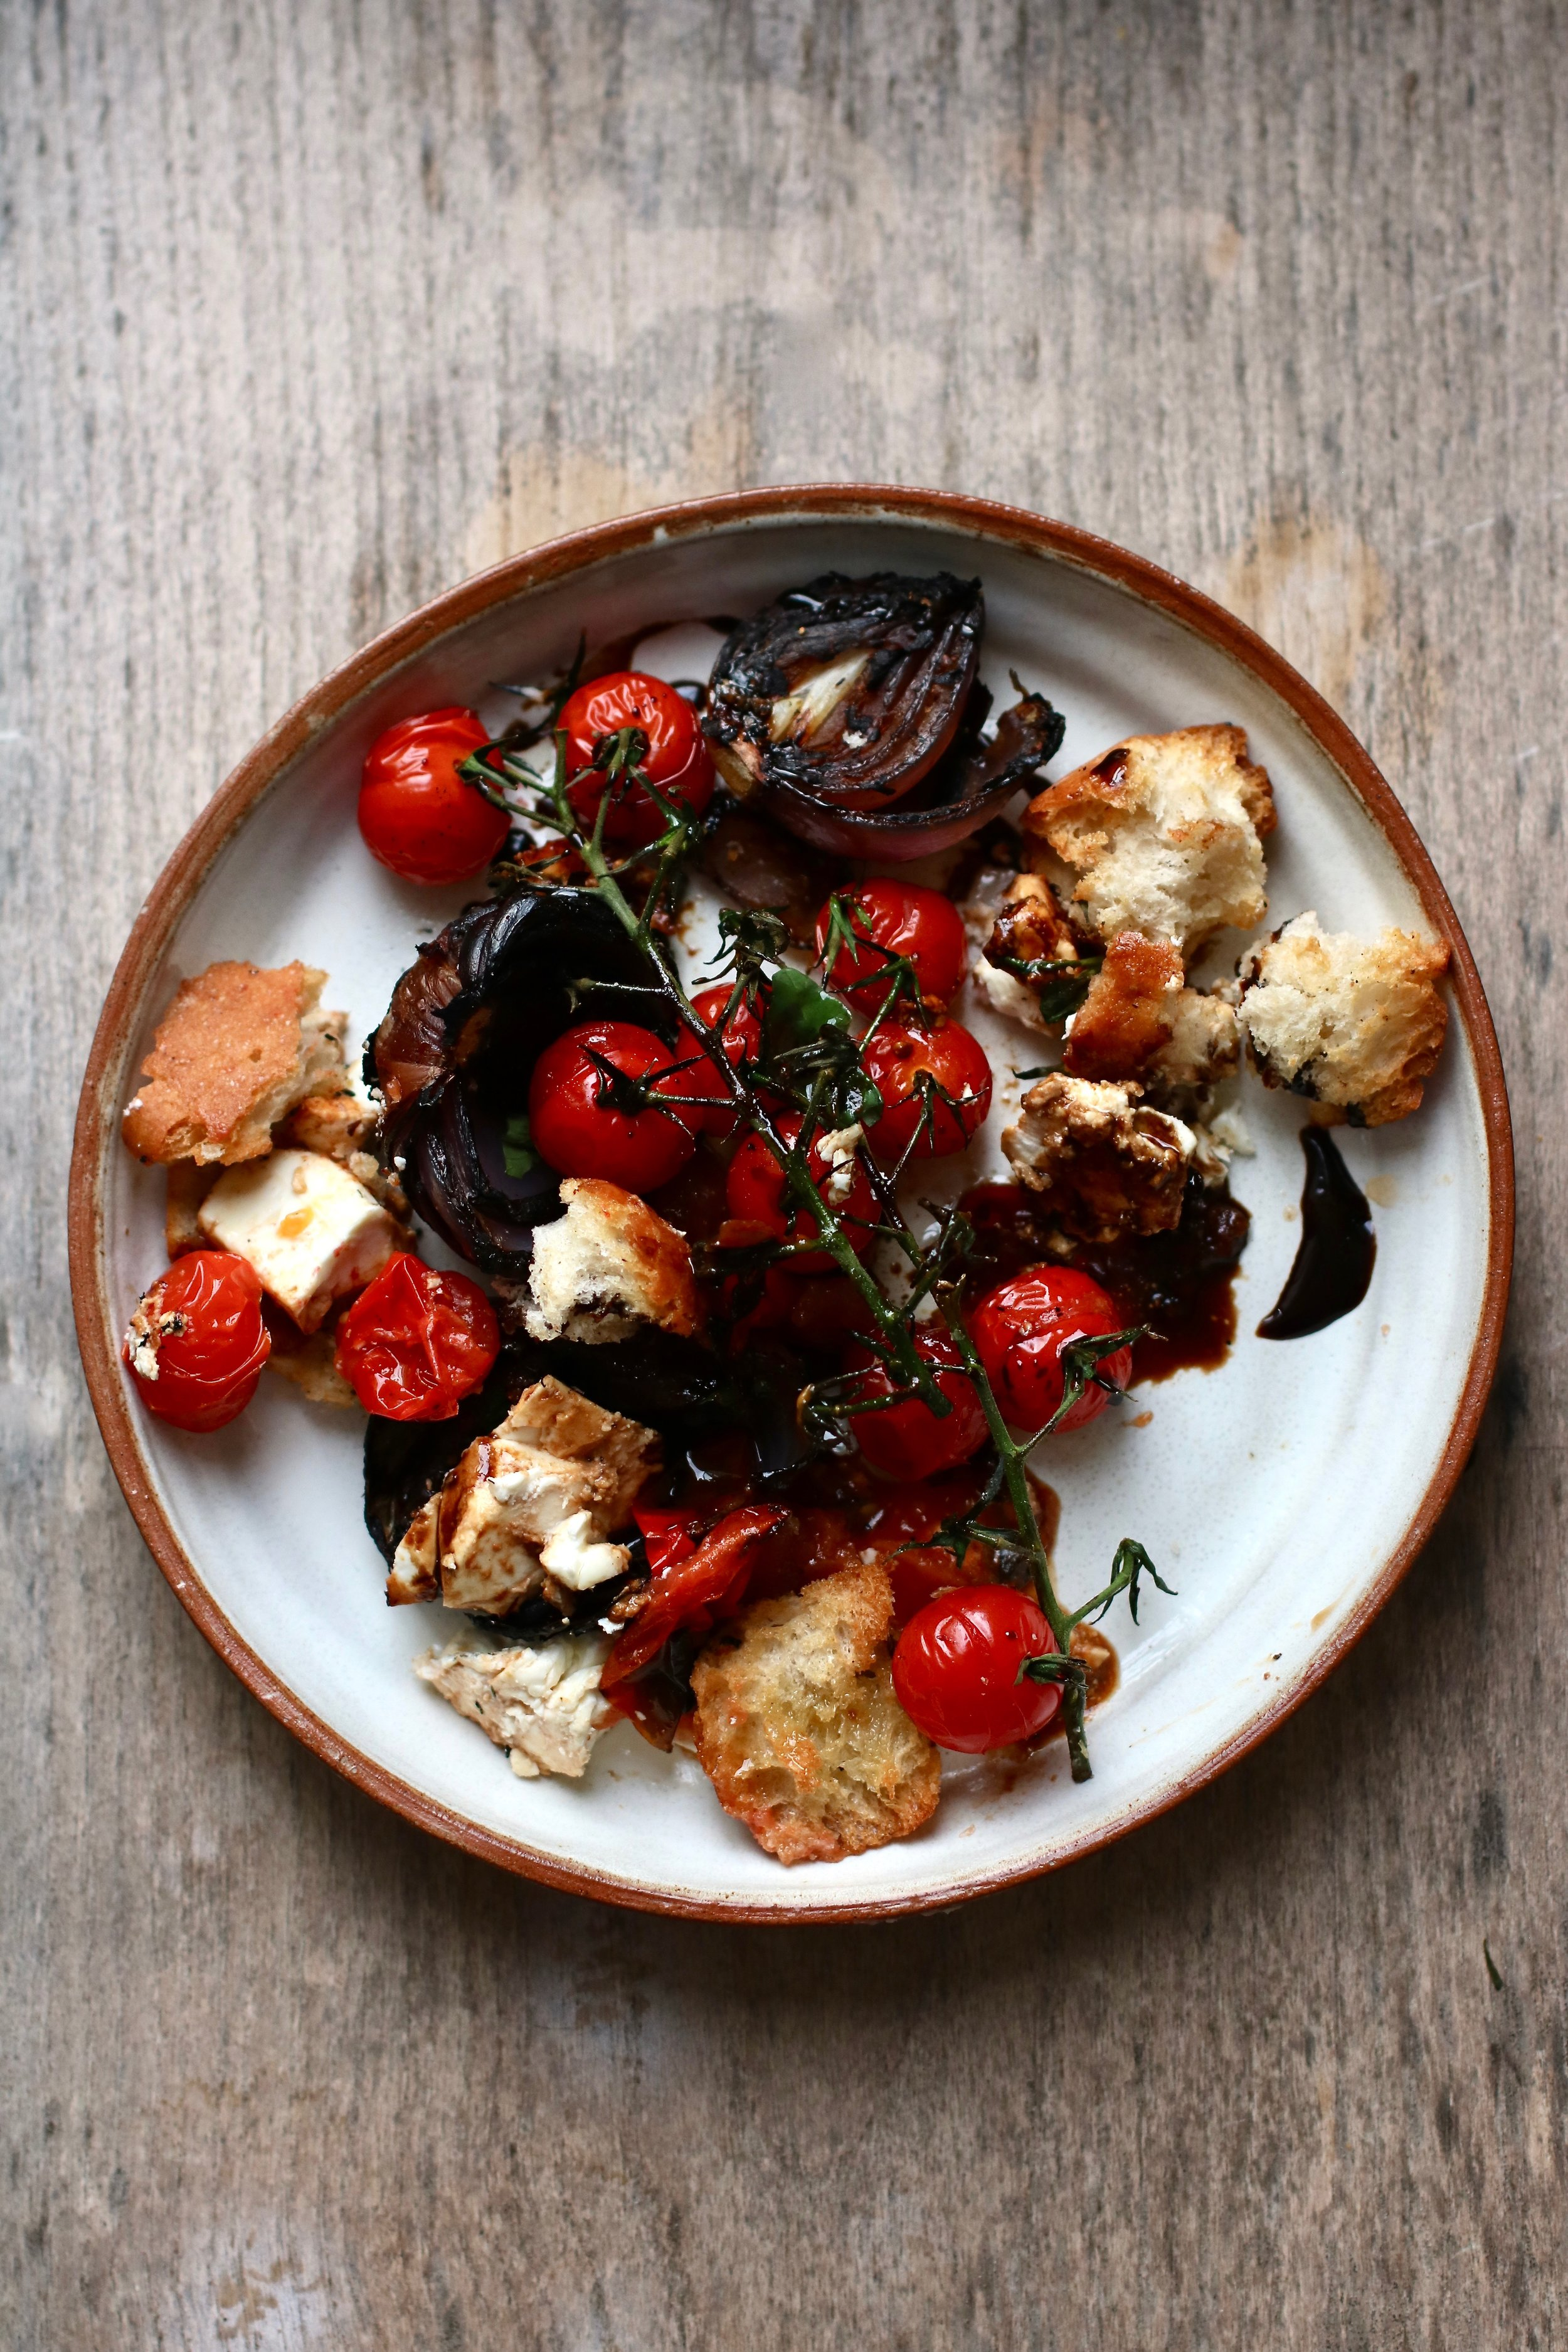 BLACKENED TOMATO SALAD   June-October . This tomato salad brings together the best of British tomatoes with firey smokey flavour and crusty croutons.